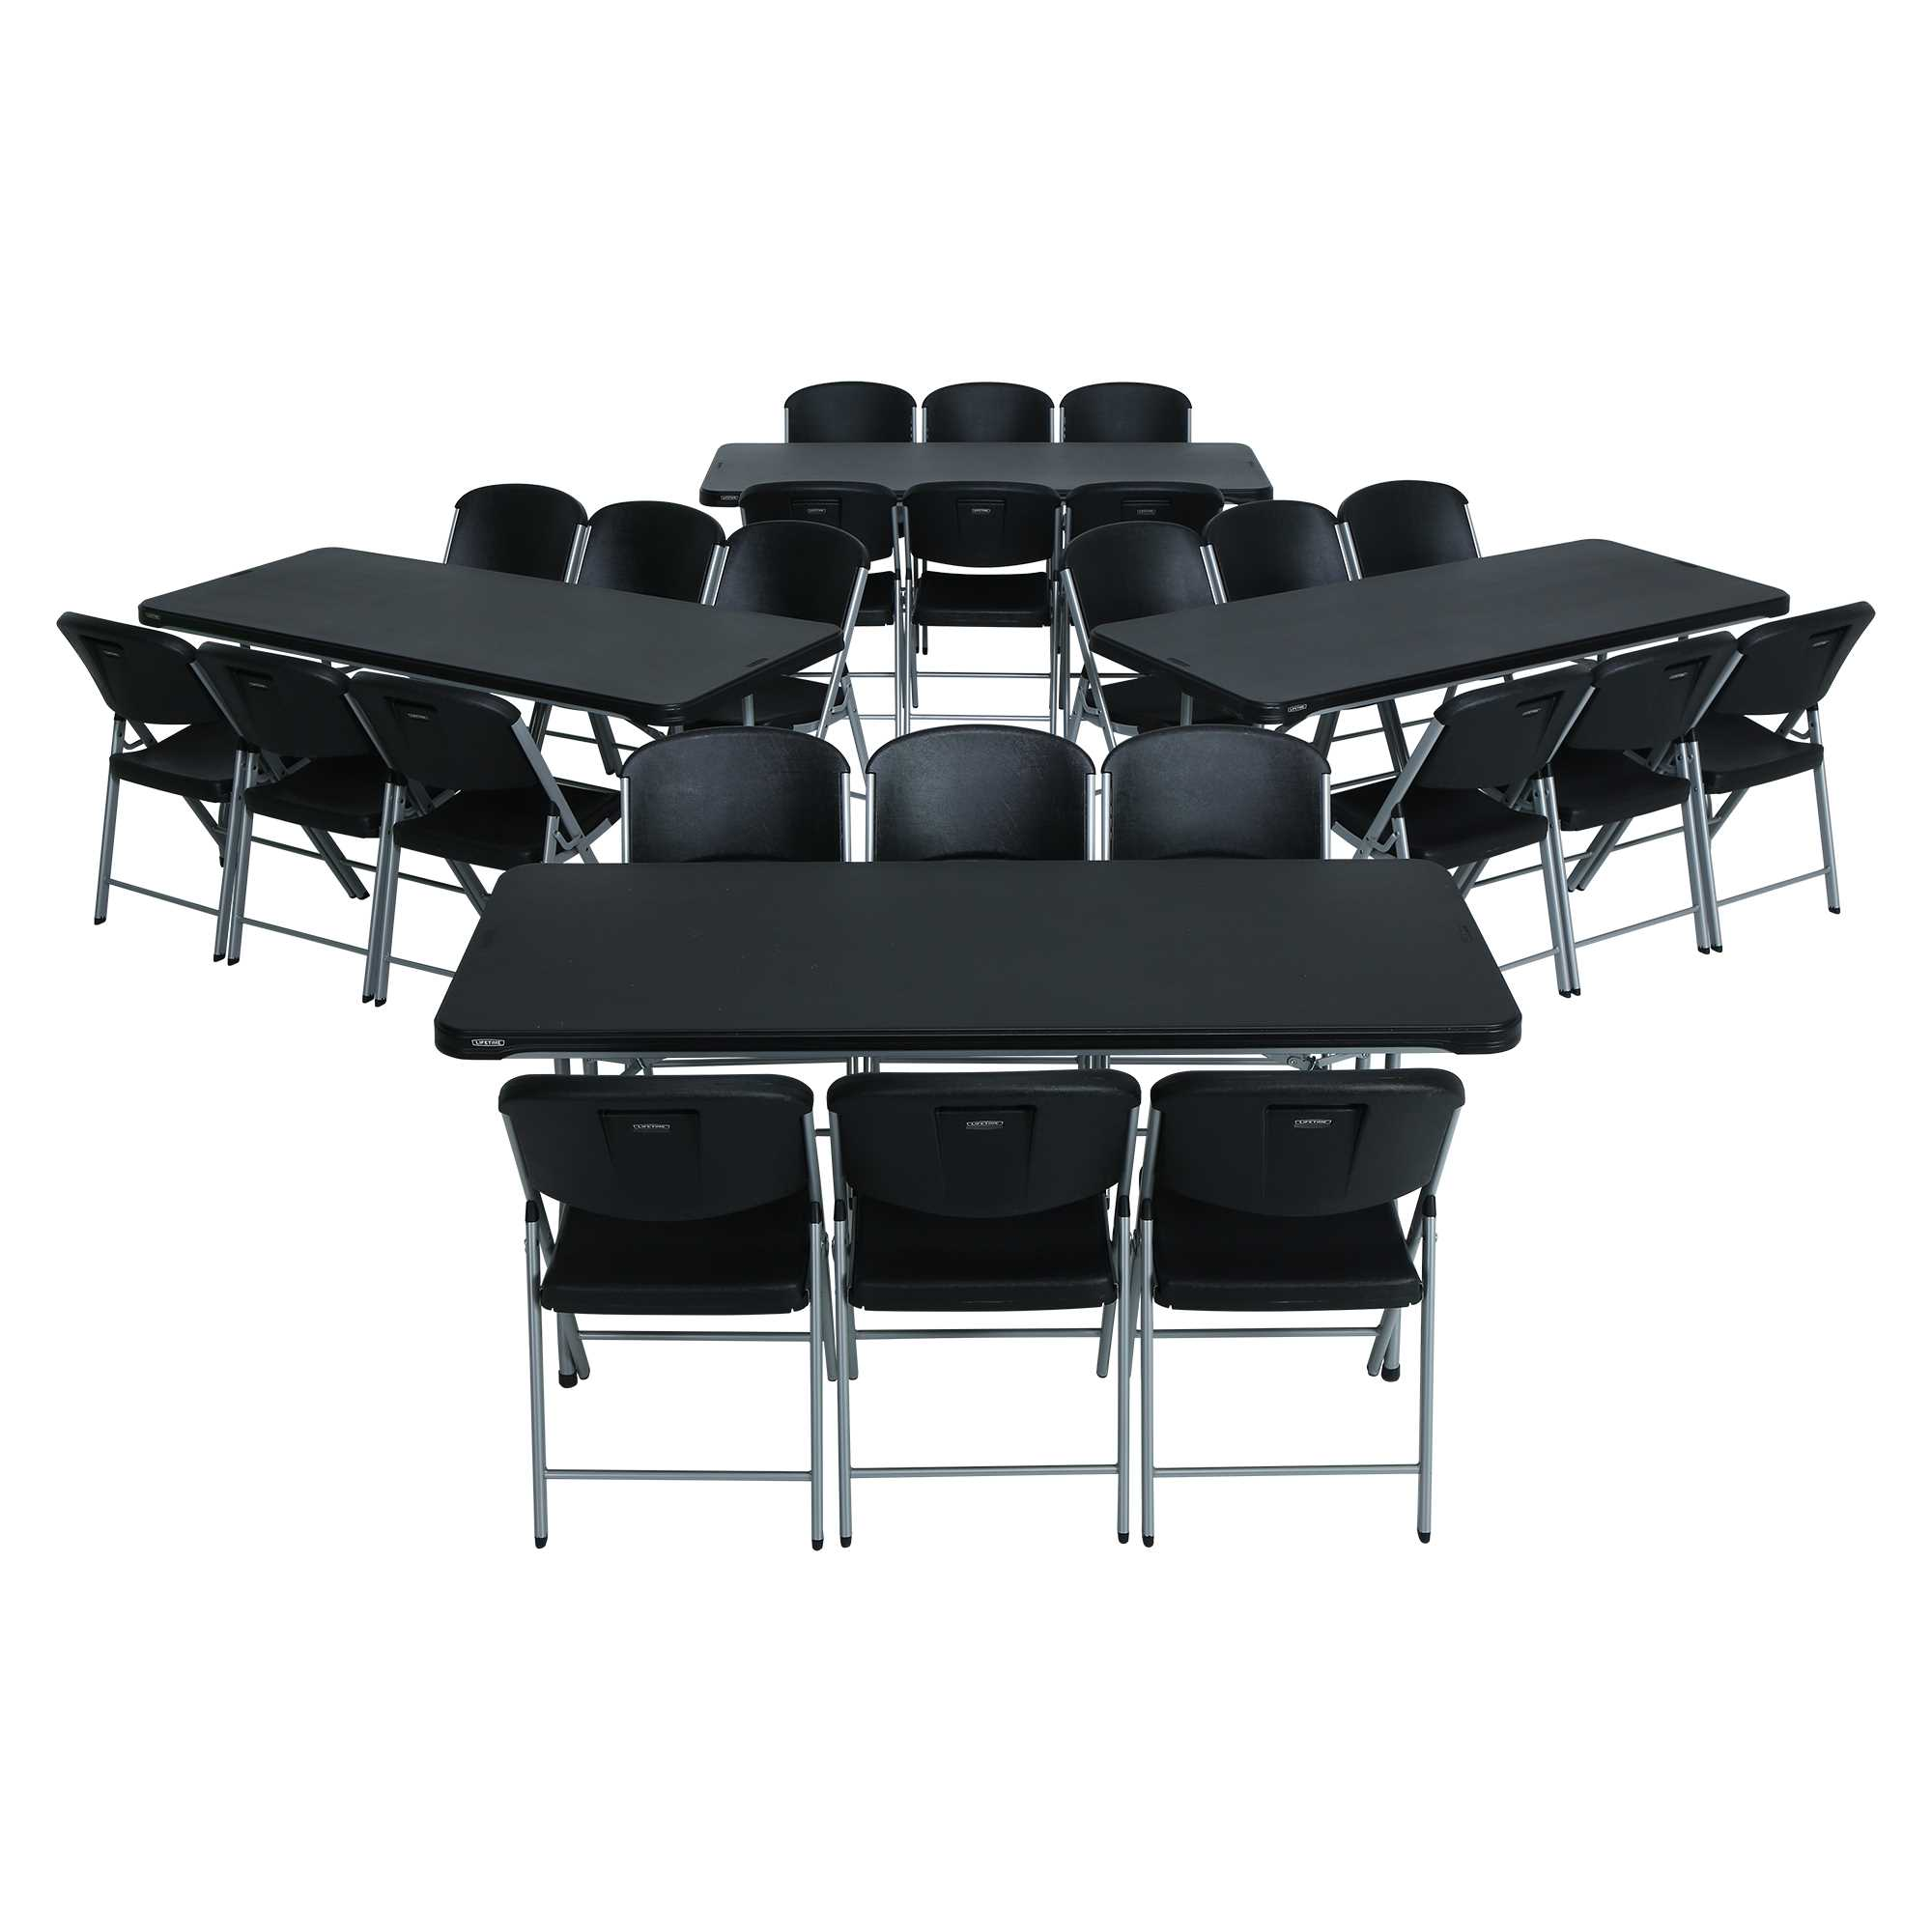 Lifetime 6 Ft Rectangular Tables Amp Chairs Black Fast